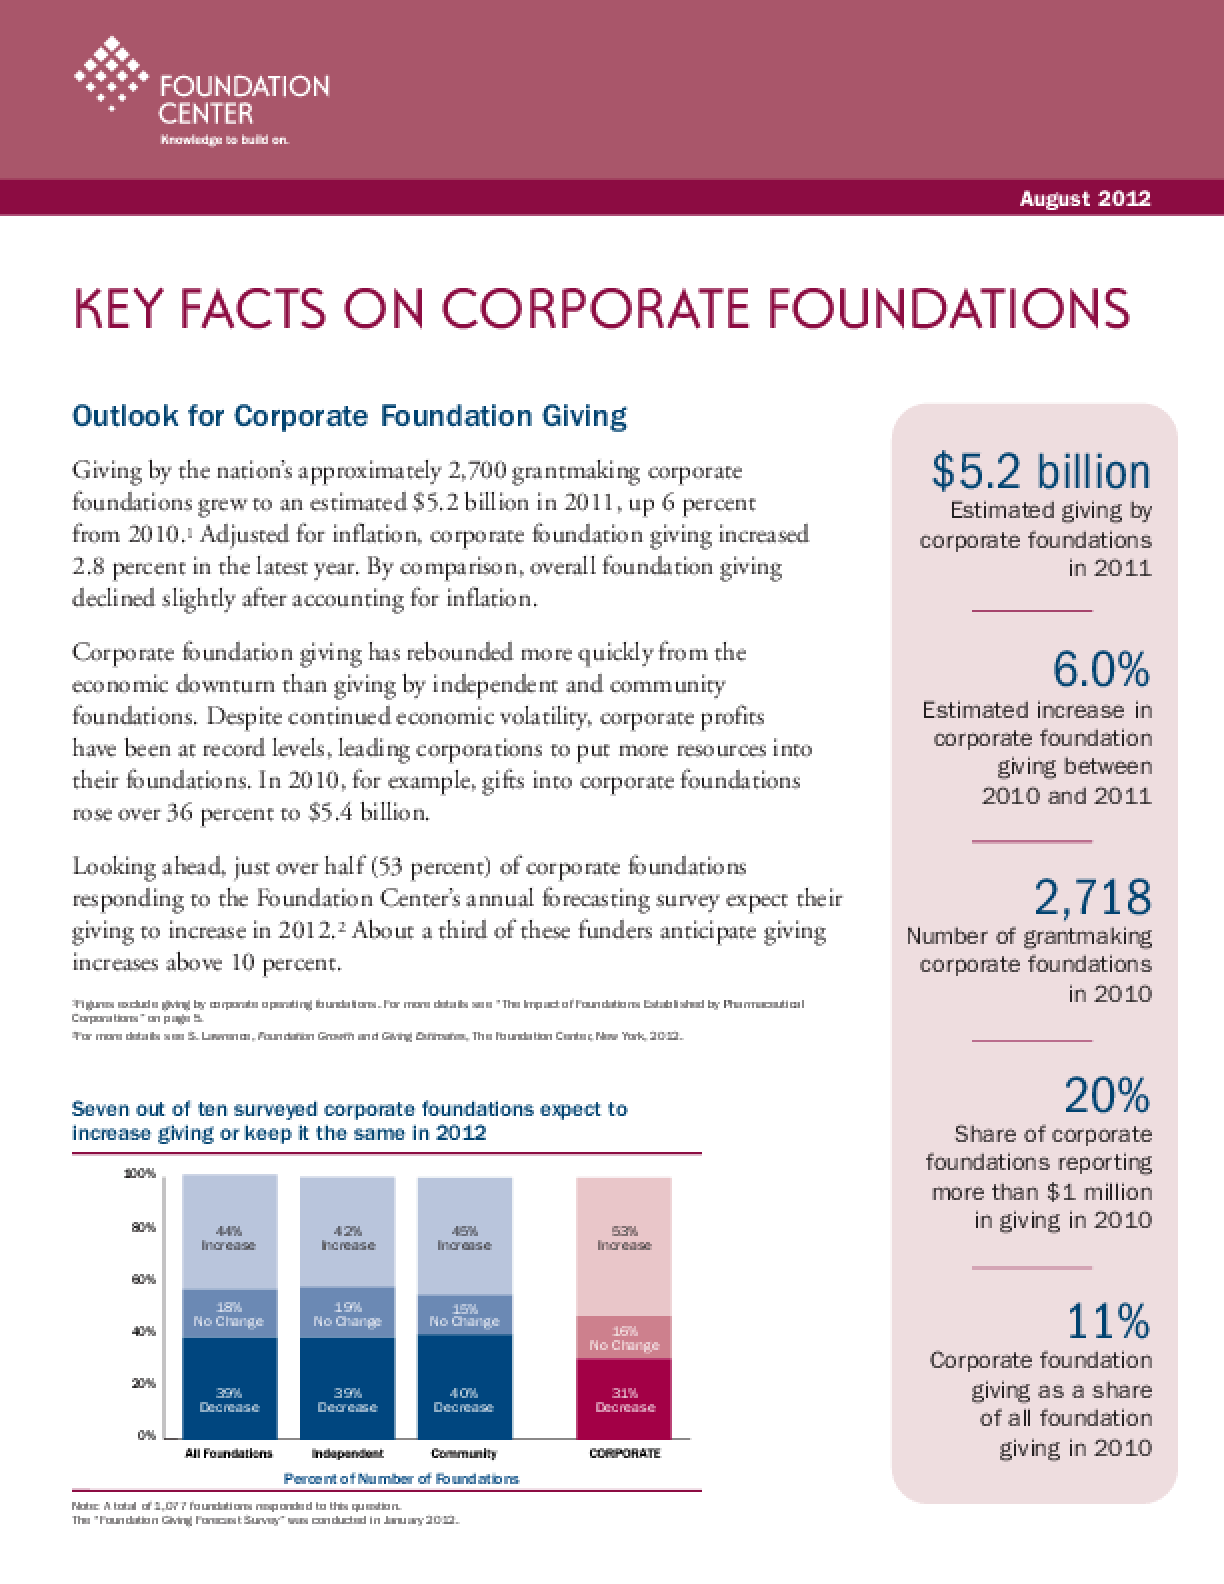 Key Facts on Corporate Foundations 2012